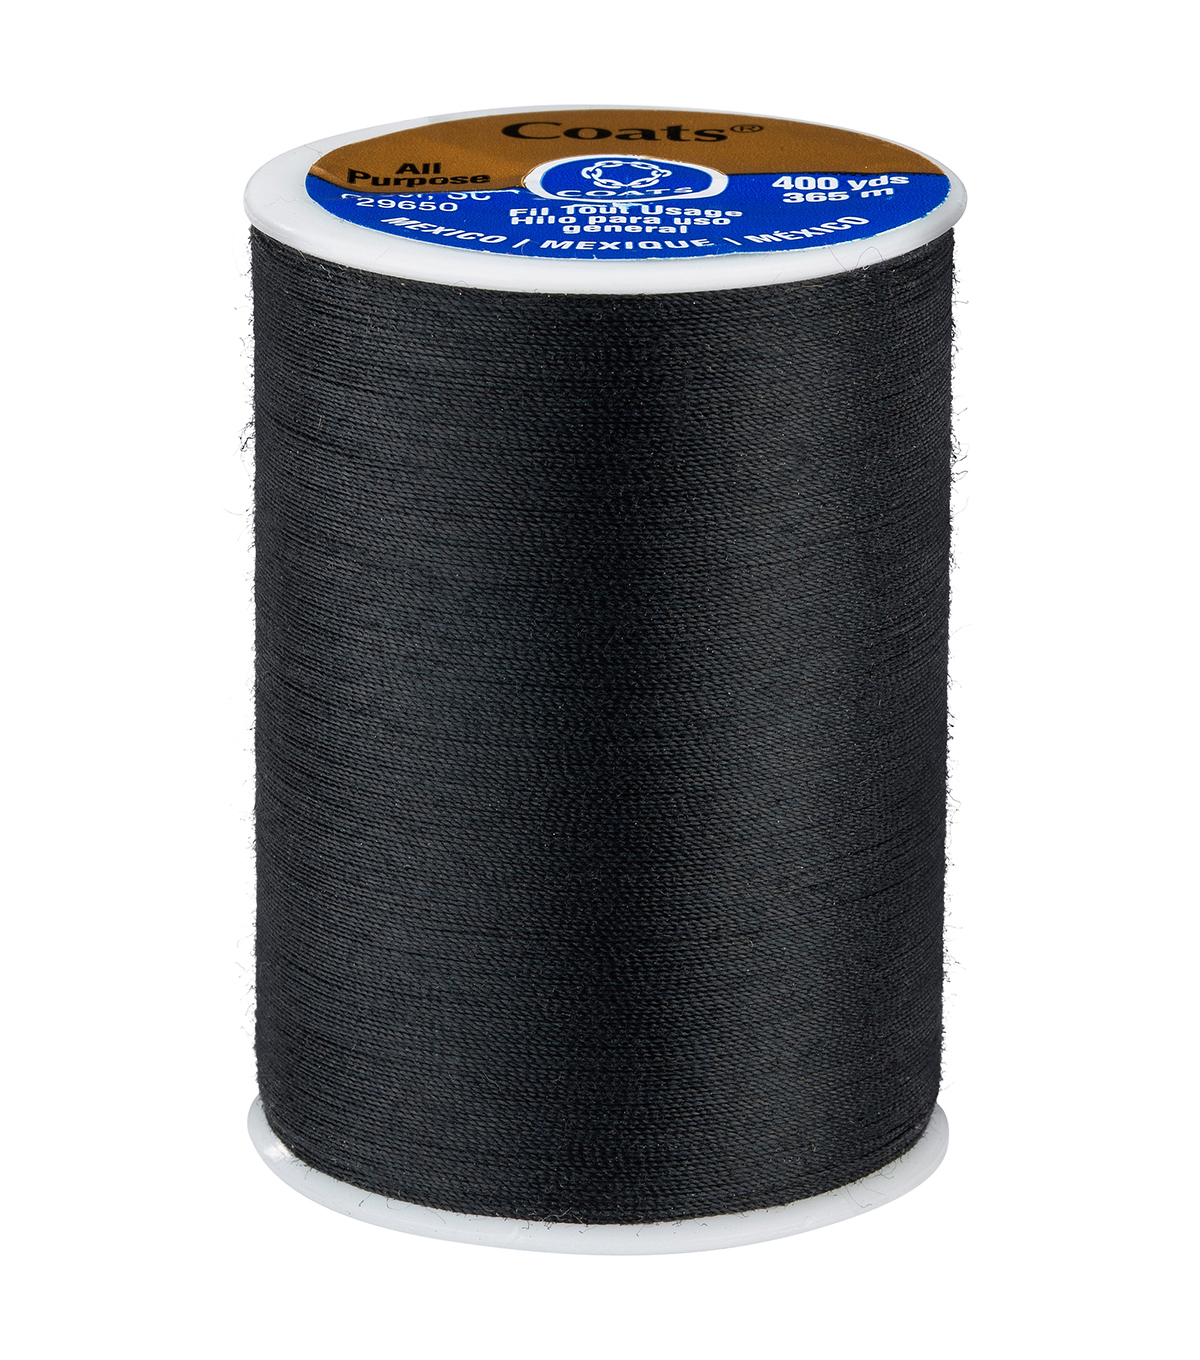 Coats & Clark Dual Duty Thread-400yds, 0002 Black